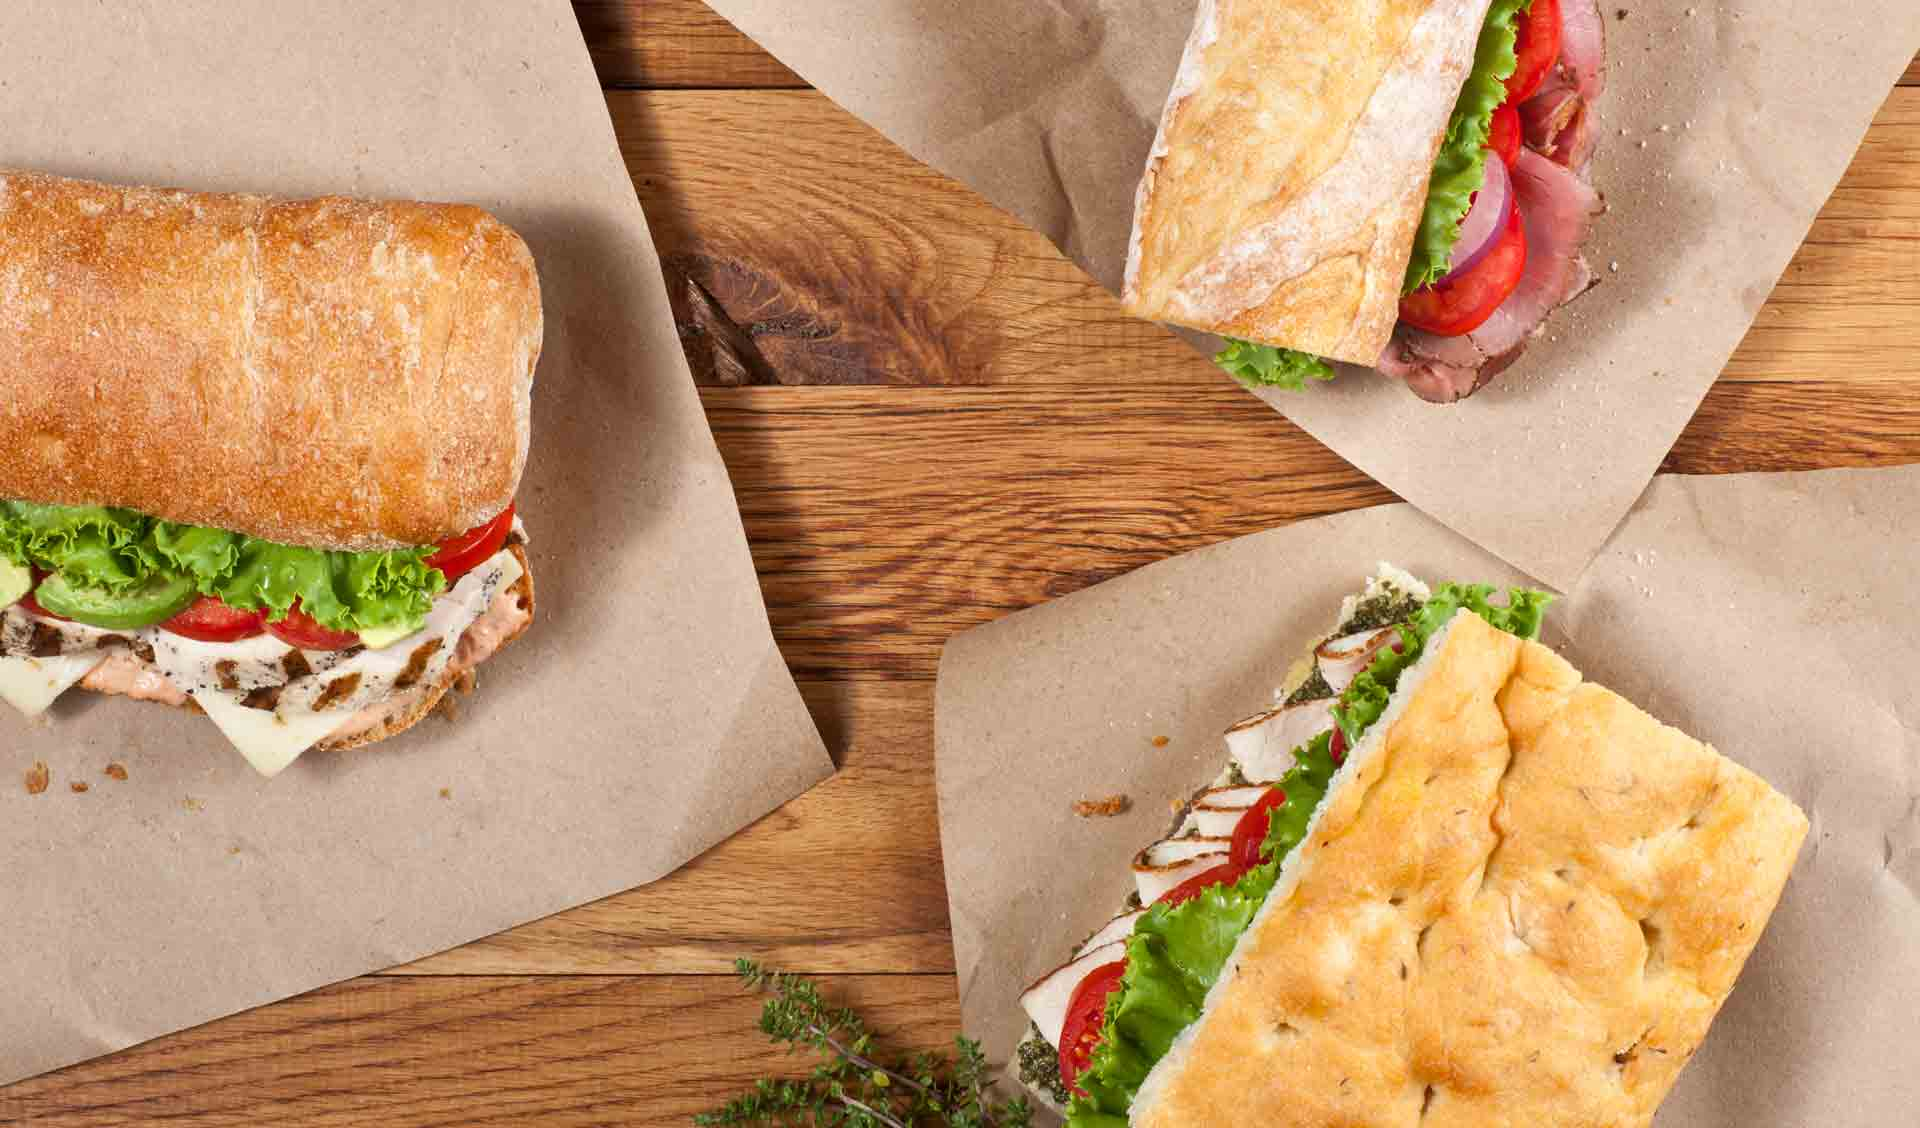 Sandwiches from Ladle and Leaf